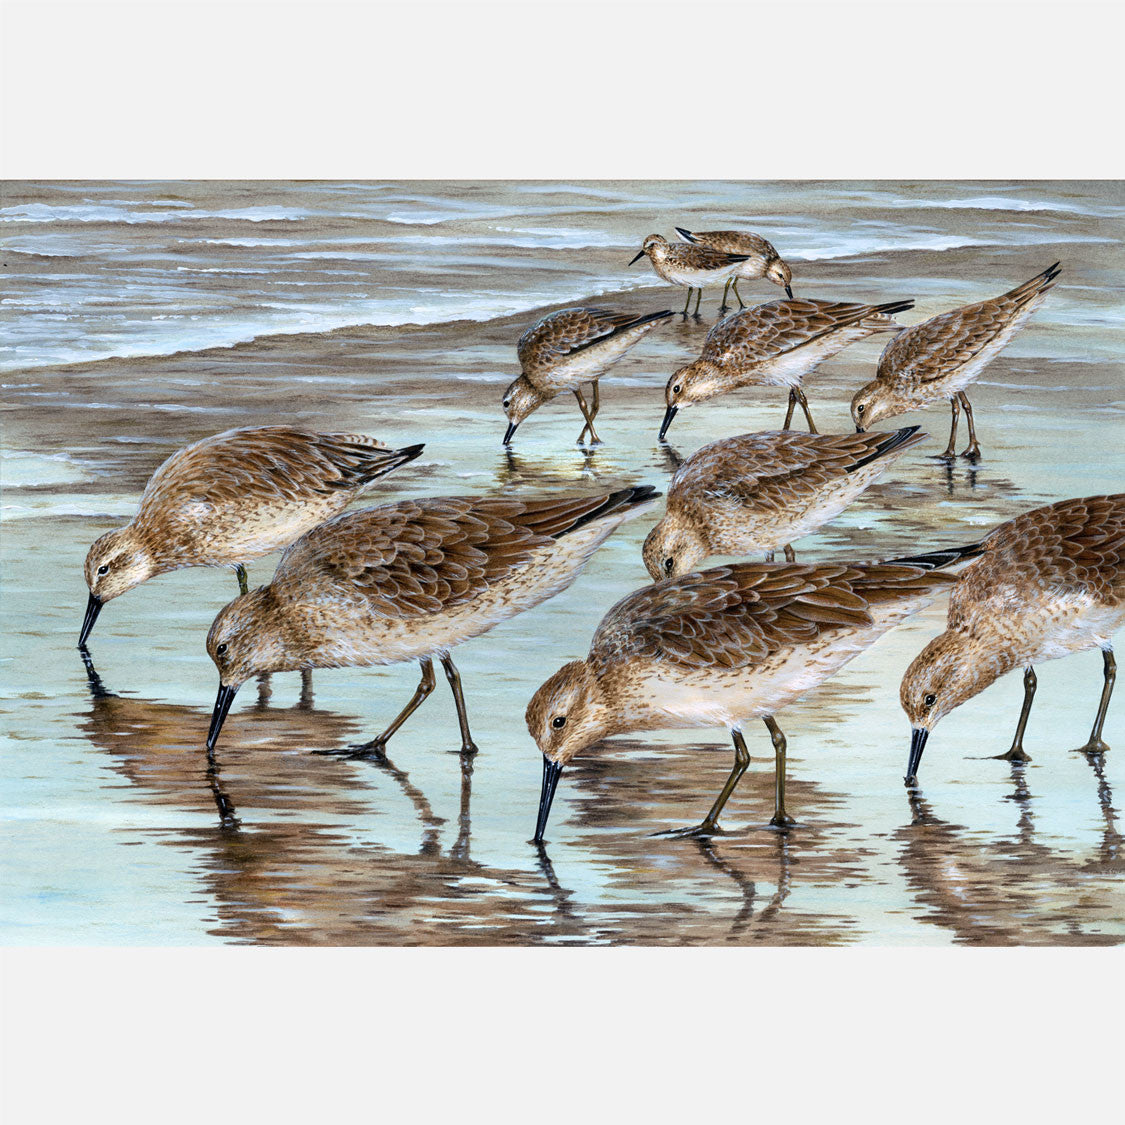 This beautiful illustration is of several red knots, Calidris canutus, foraging in the swash zone of the beach.